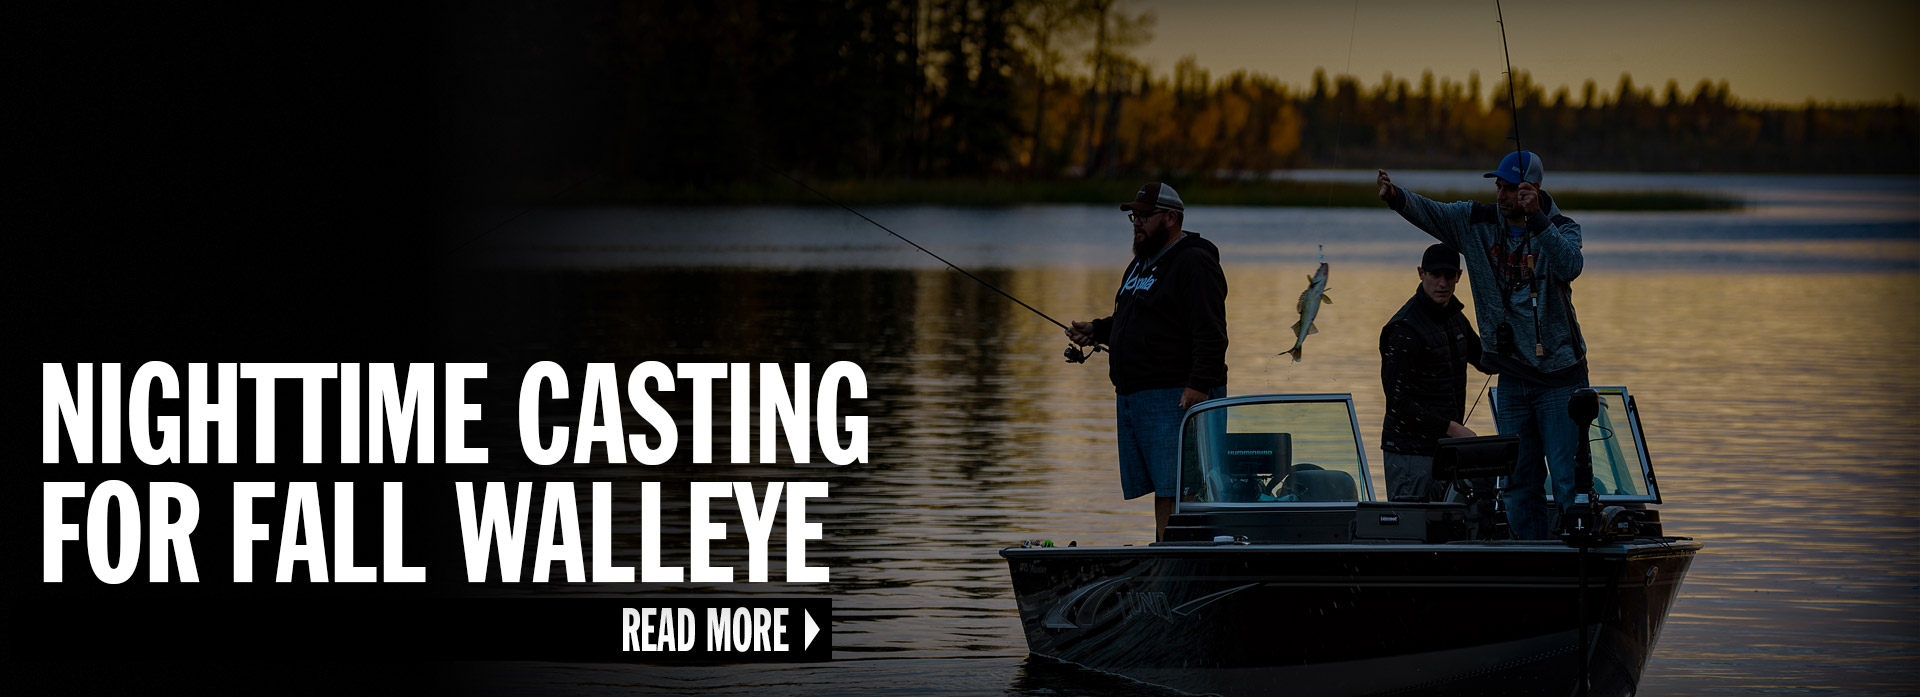 Nighttime Casting For Fall Walleye